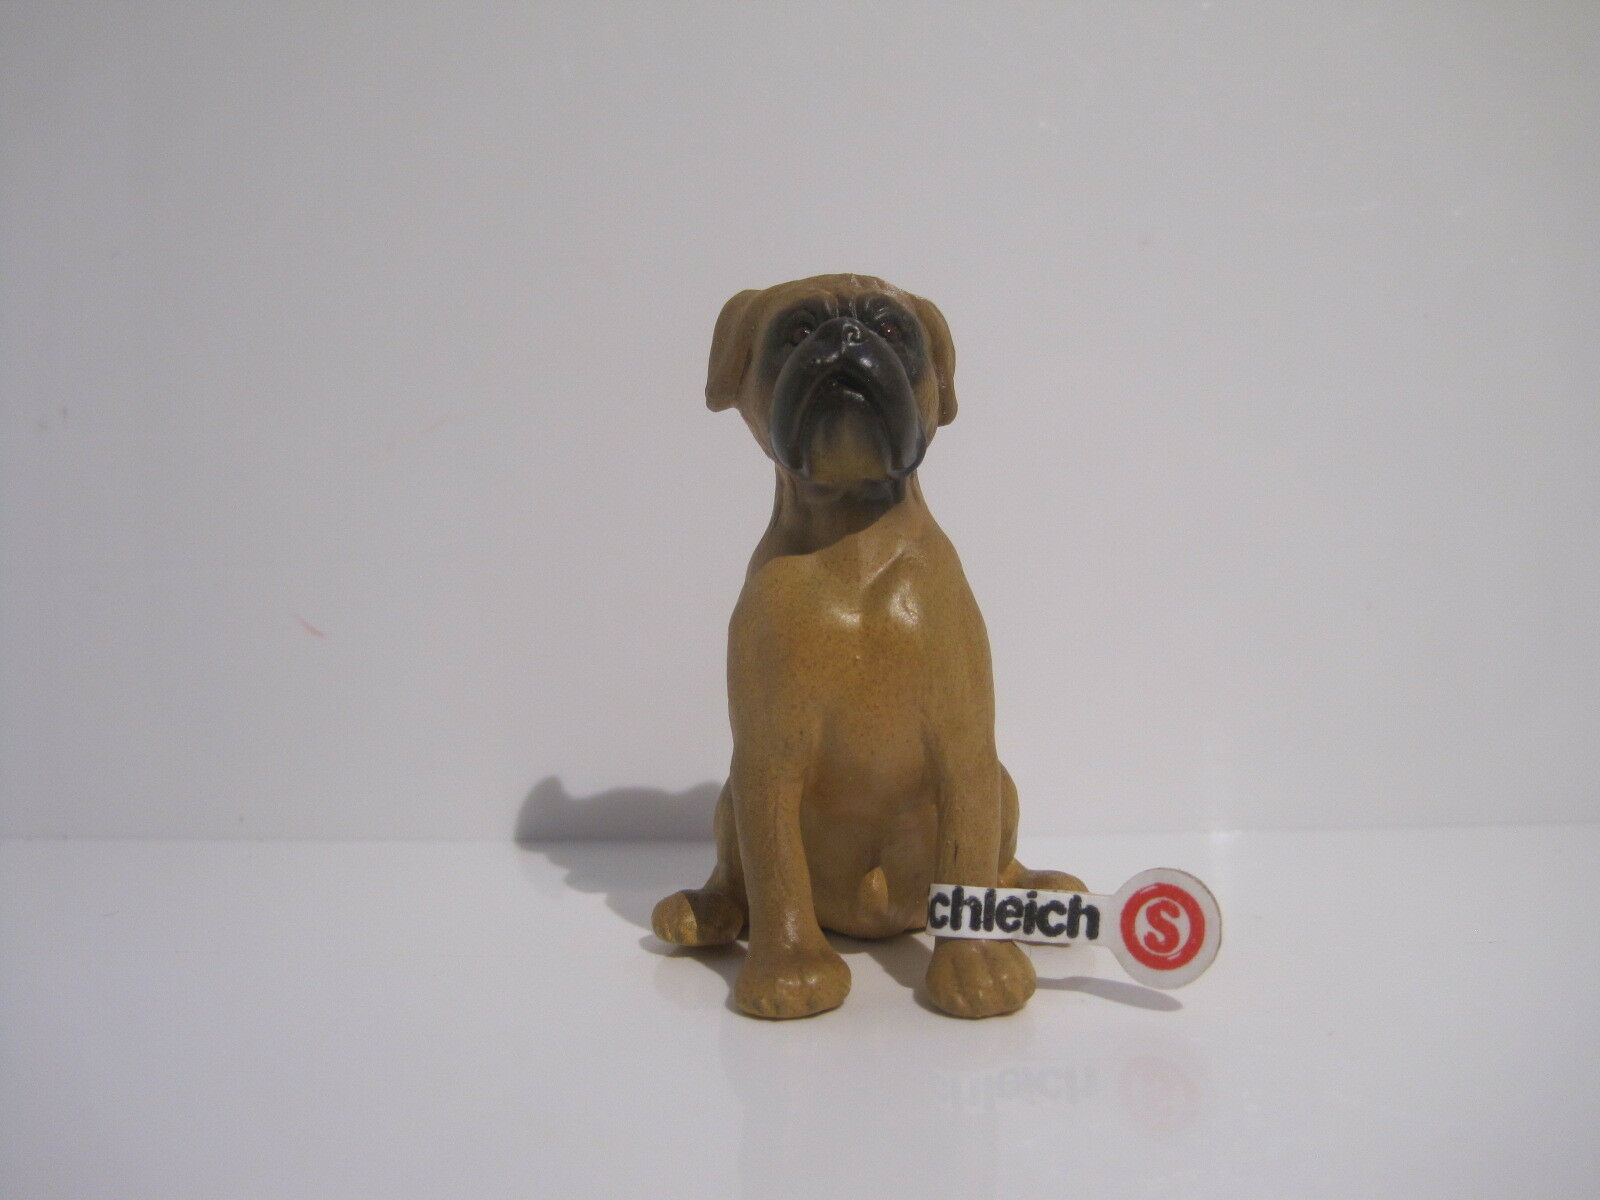 16303 -1  Schleich Dog: Boxer  with tag  MADE IN GERMANY  ref:1D340